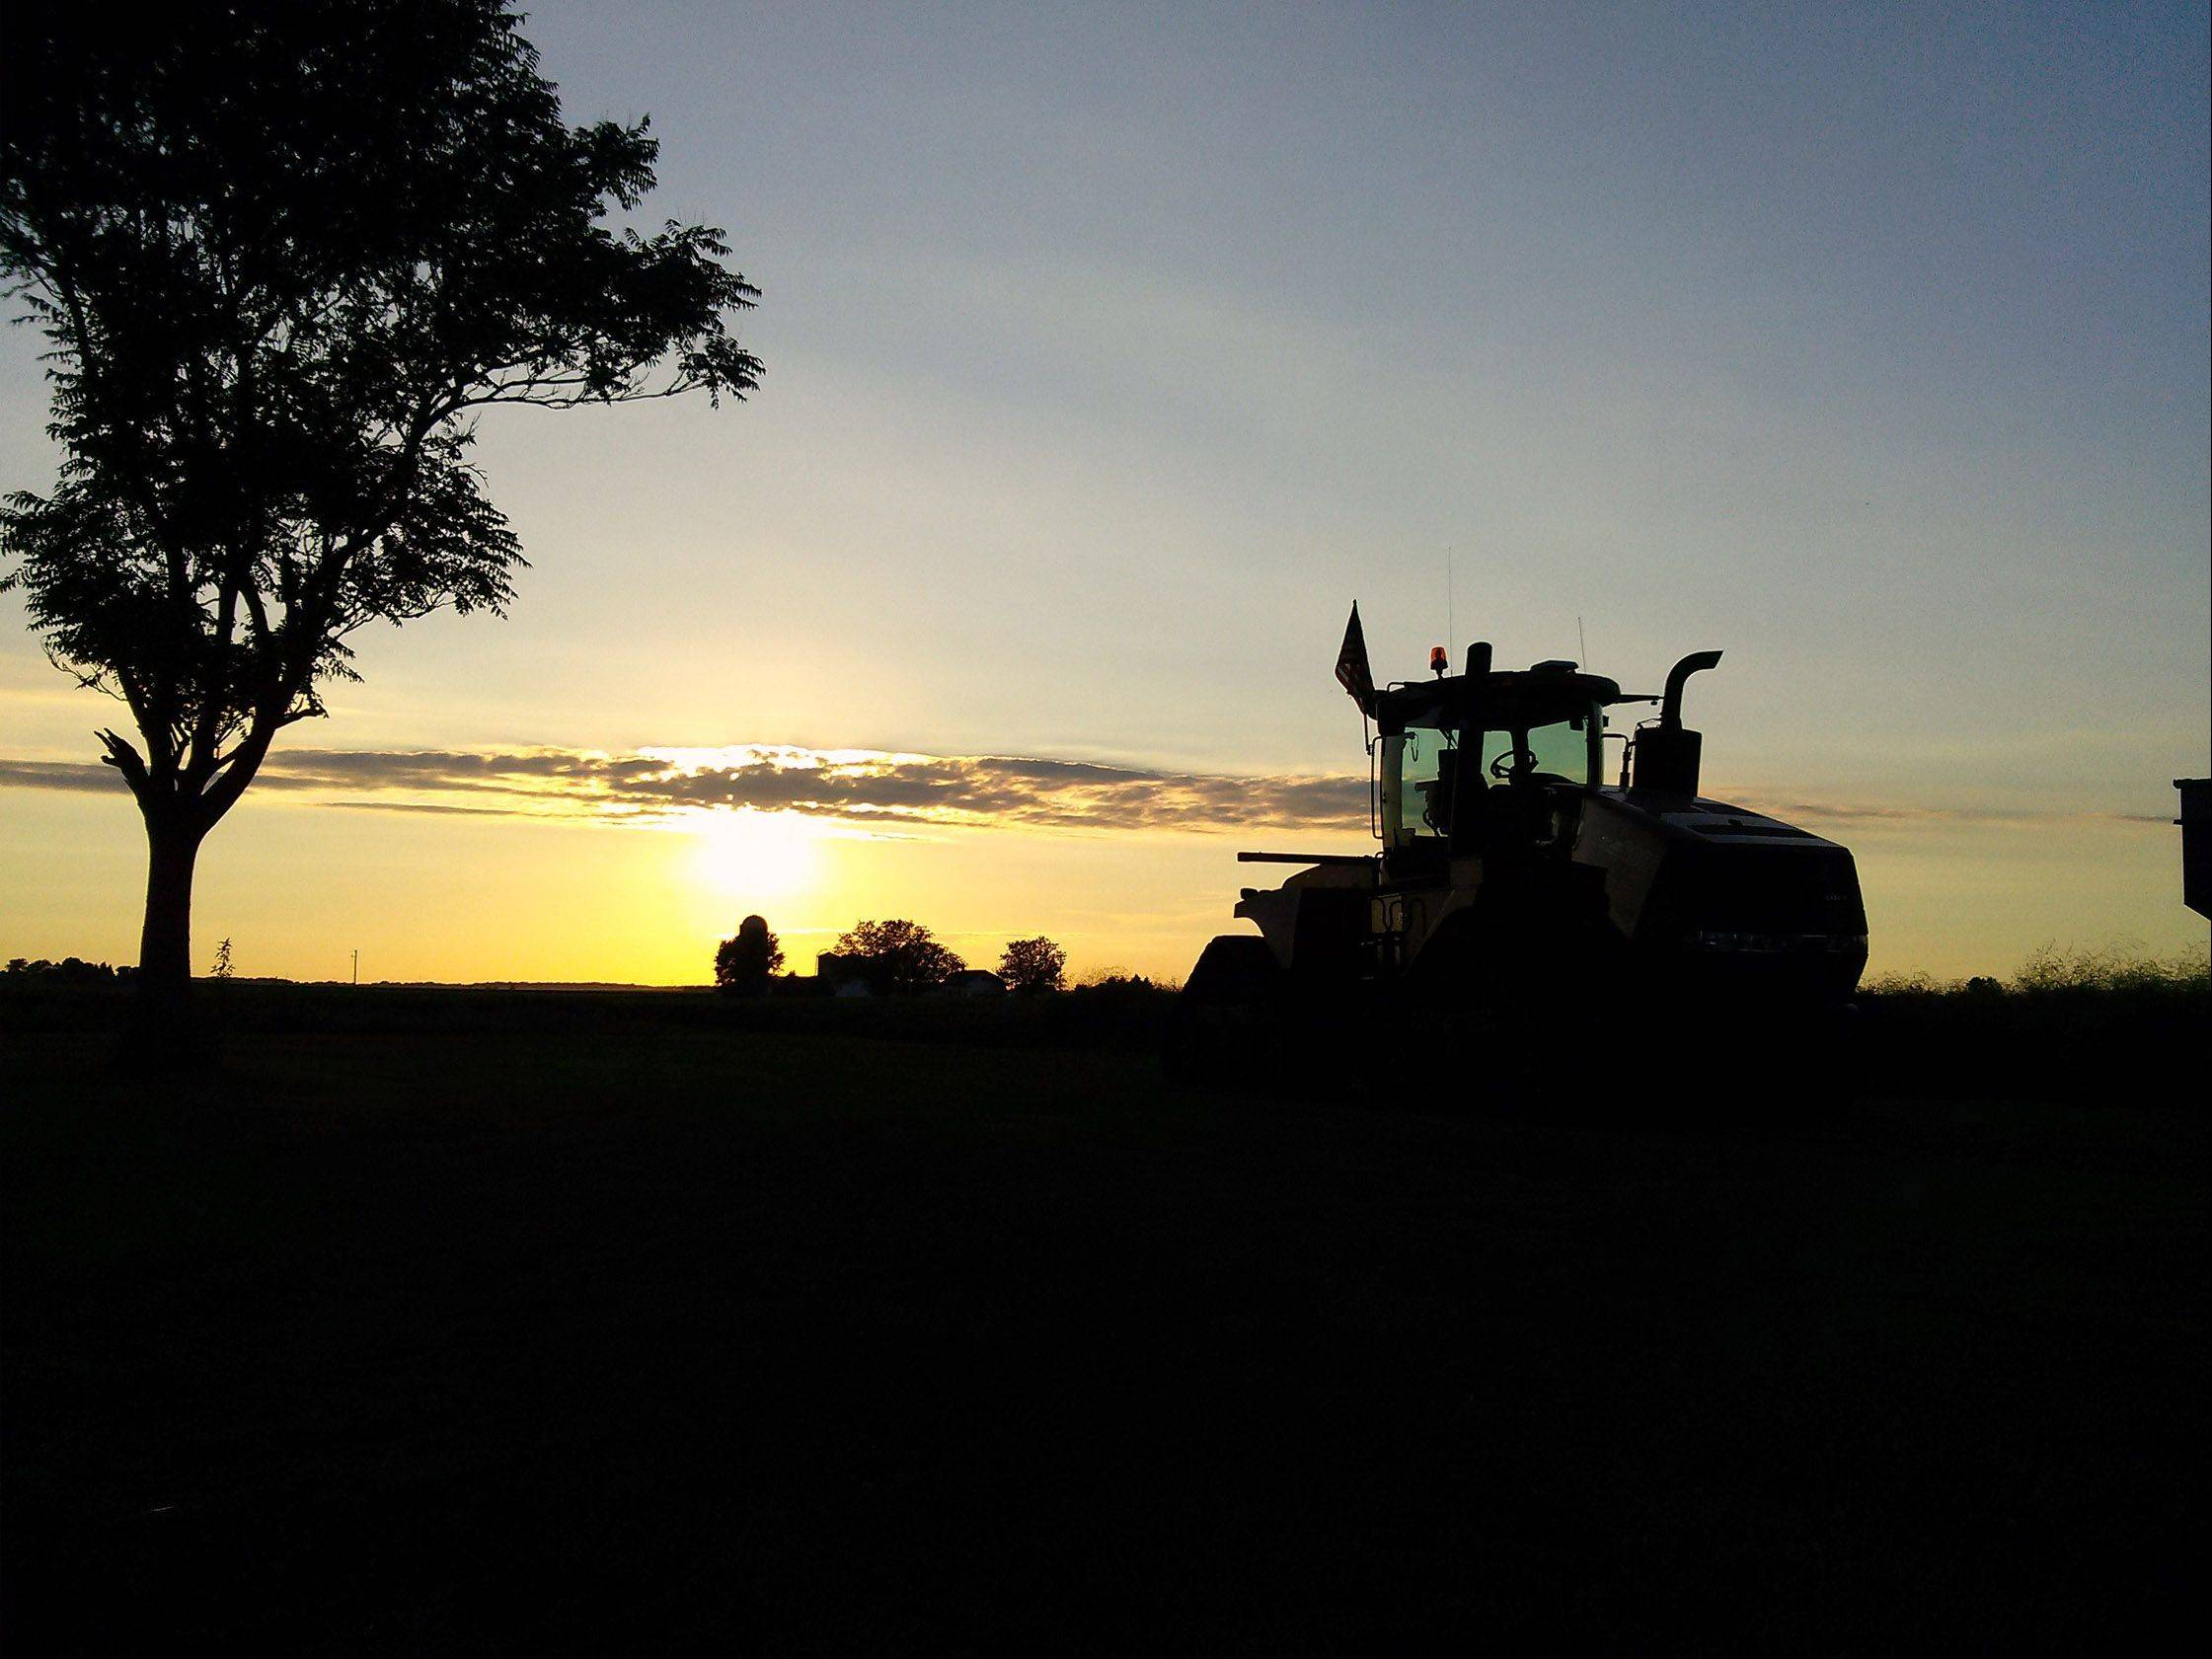 A large tractor is situated on the Phillips family farm at sunset in Sandwich, Ill. on August 10th.